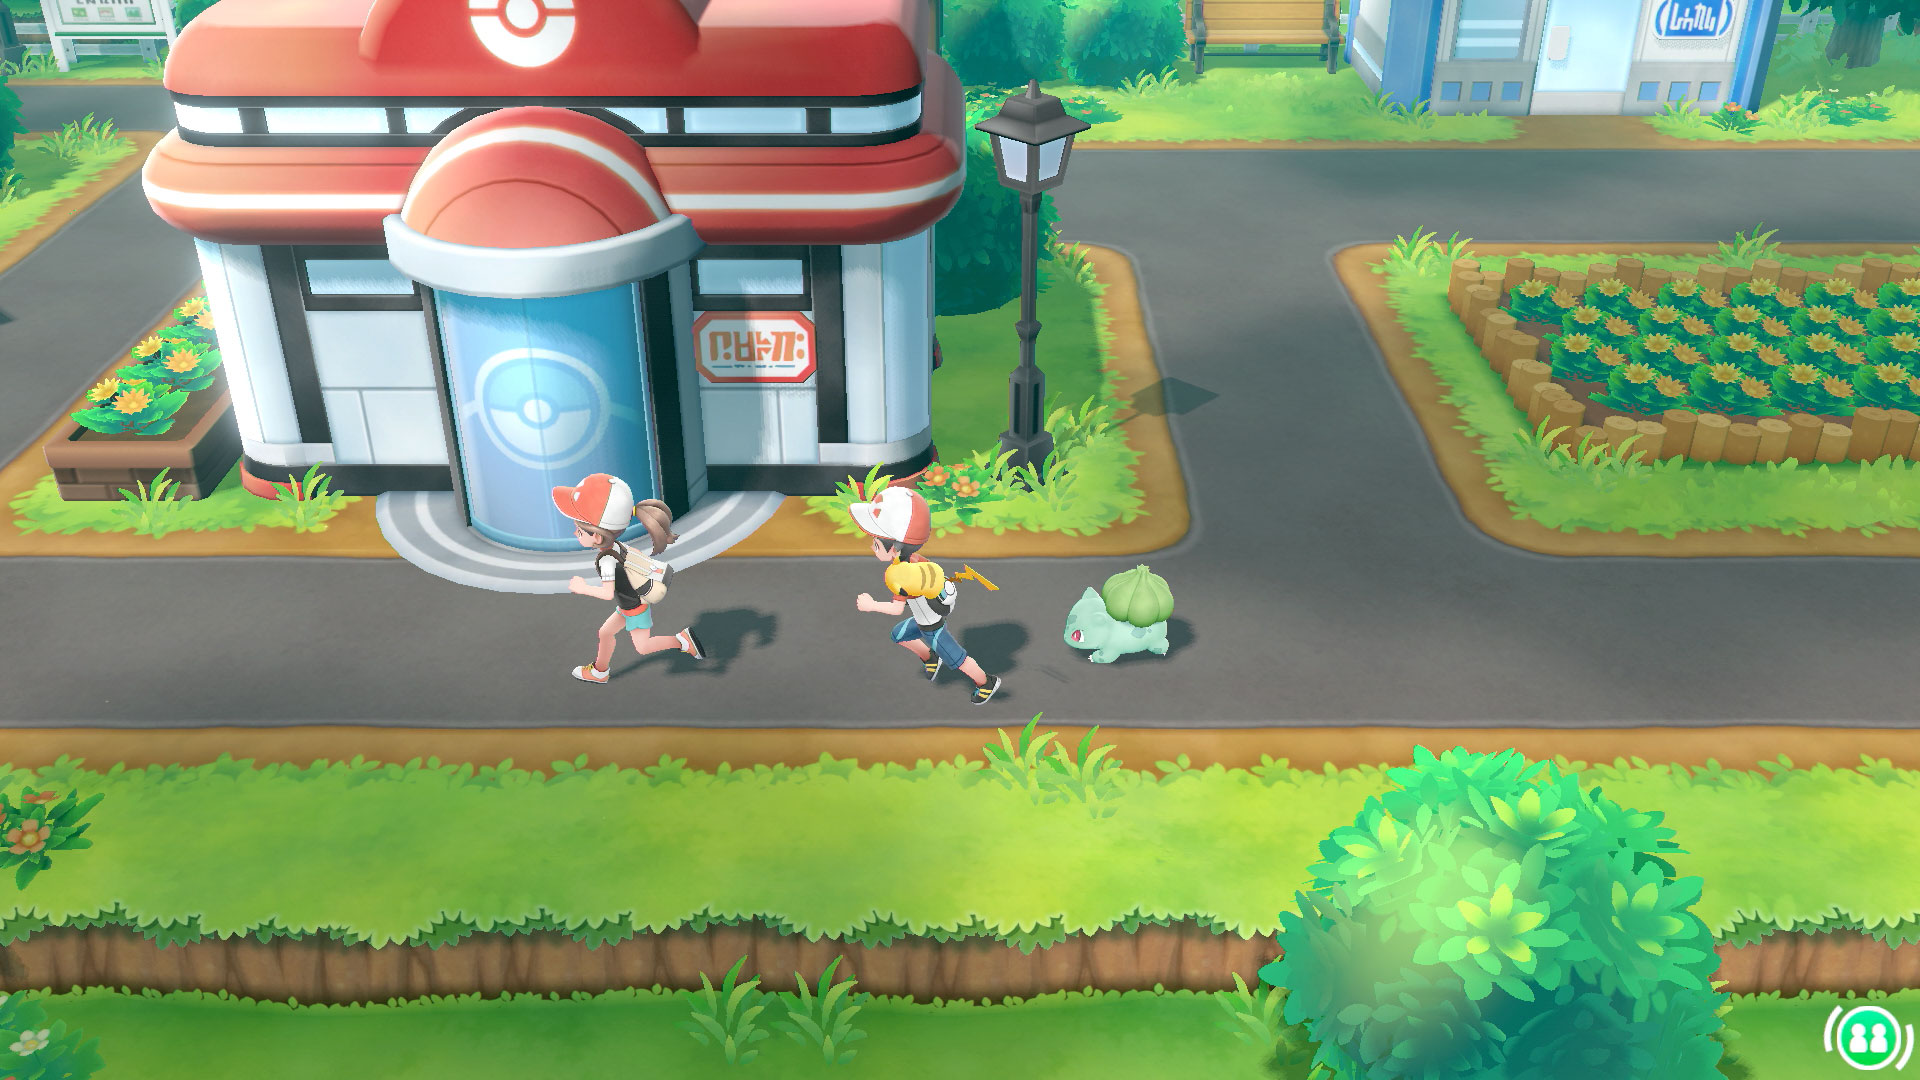 Pokemon Switch RPG likely won't make next Nintendo Direct